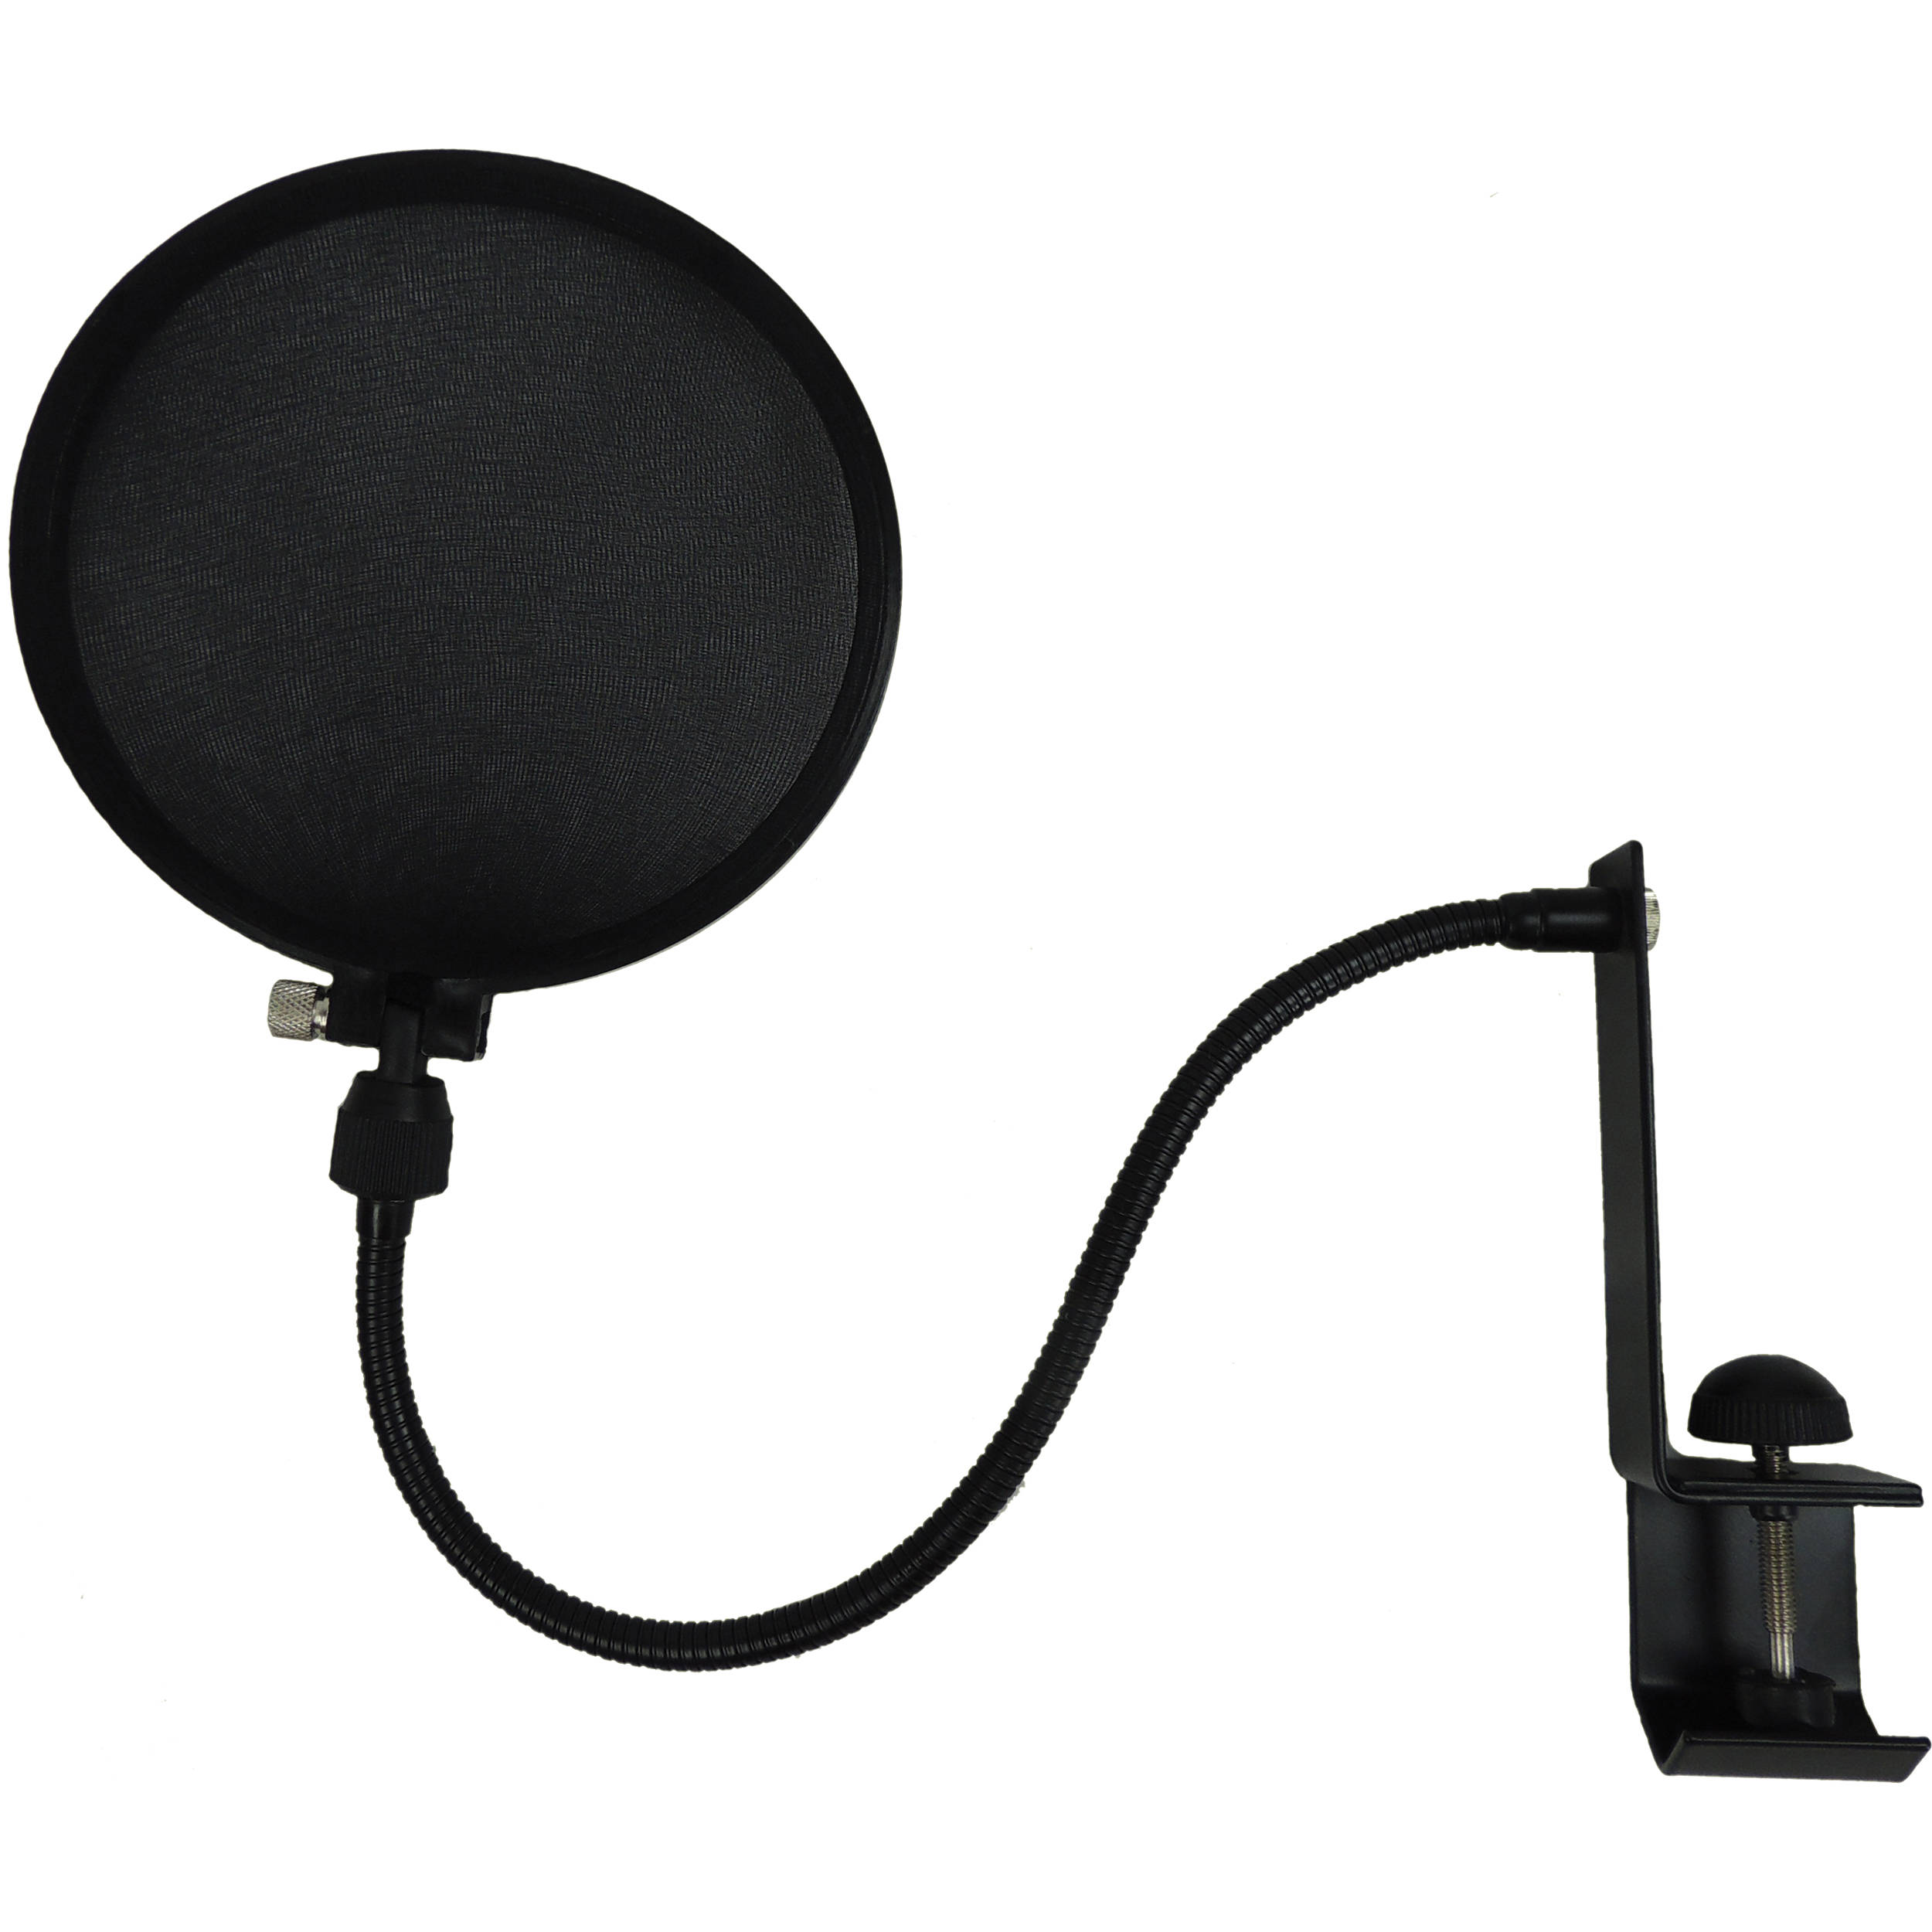 Mic Stand With Pop Filter : nady microphone pop filter with boom and stand clamp spf 1 b h ~ Hamham.info Haus und Dekorationen